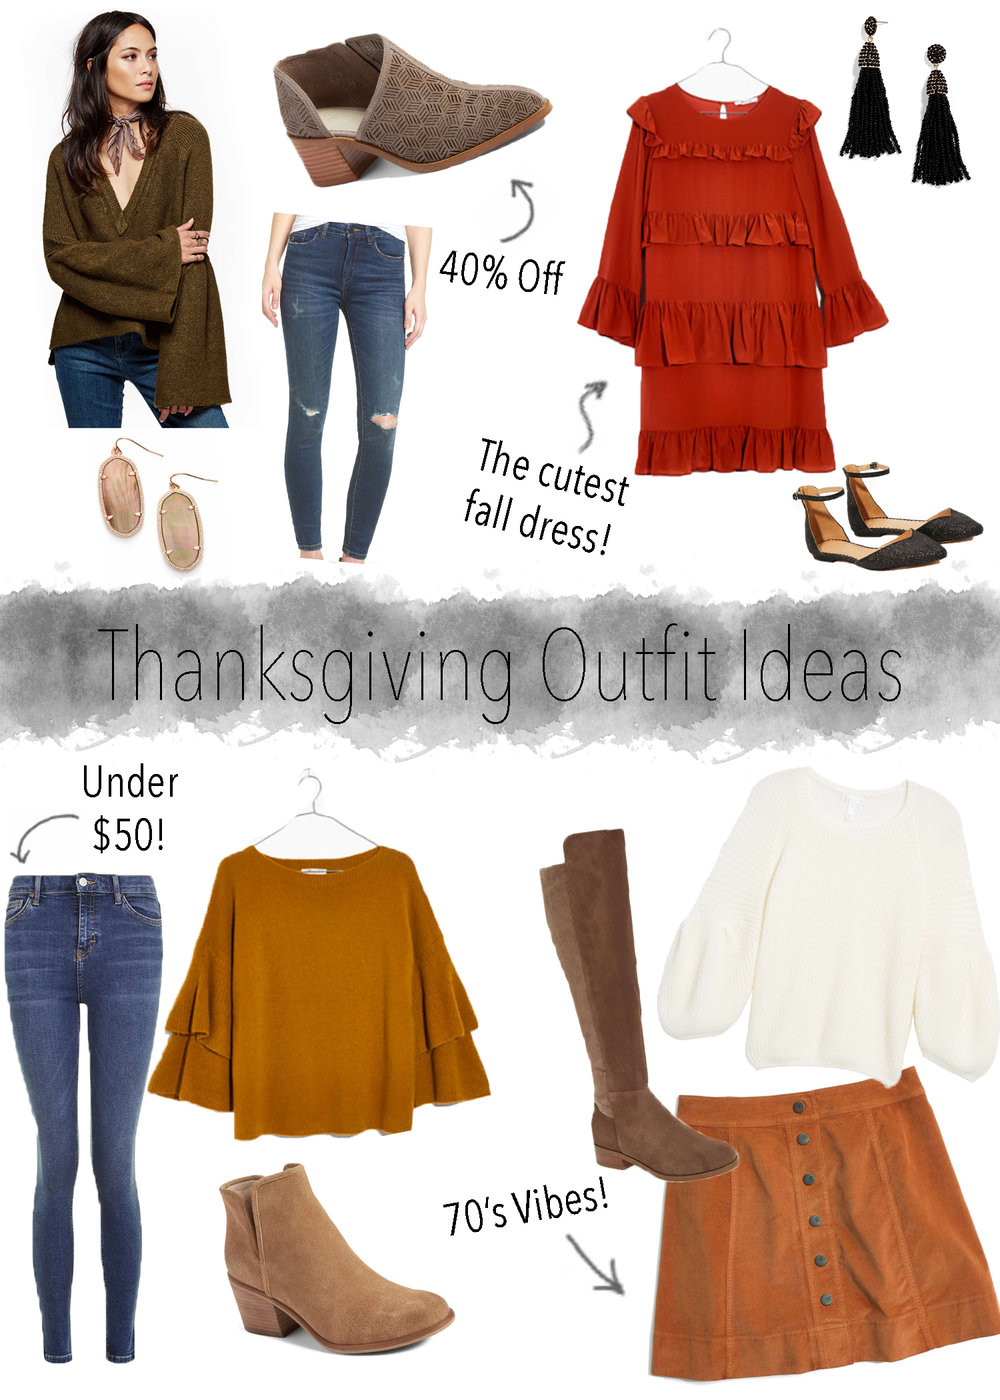 thanksgivingoutfits17.jpg